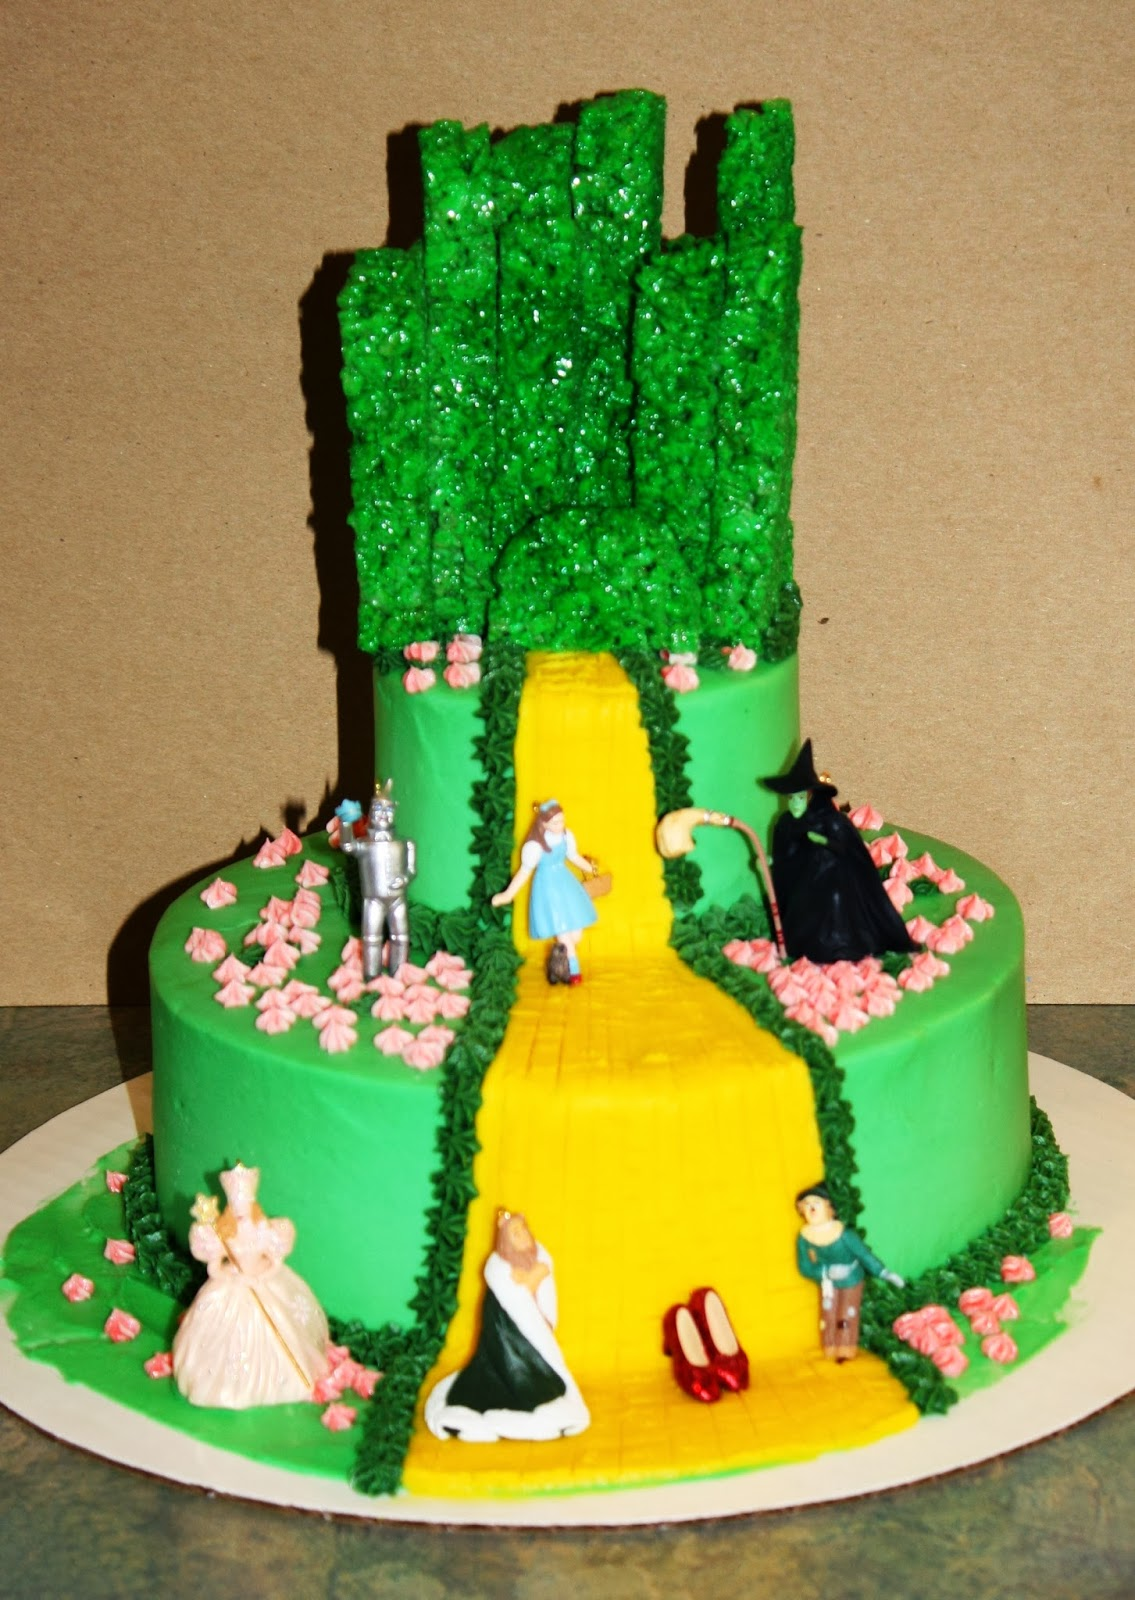 Cake Decorations For Wizard Of Oz : Party Cakes: Wizard of Oz Cake